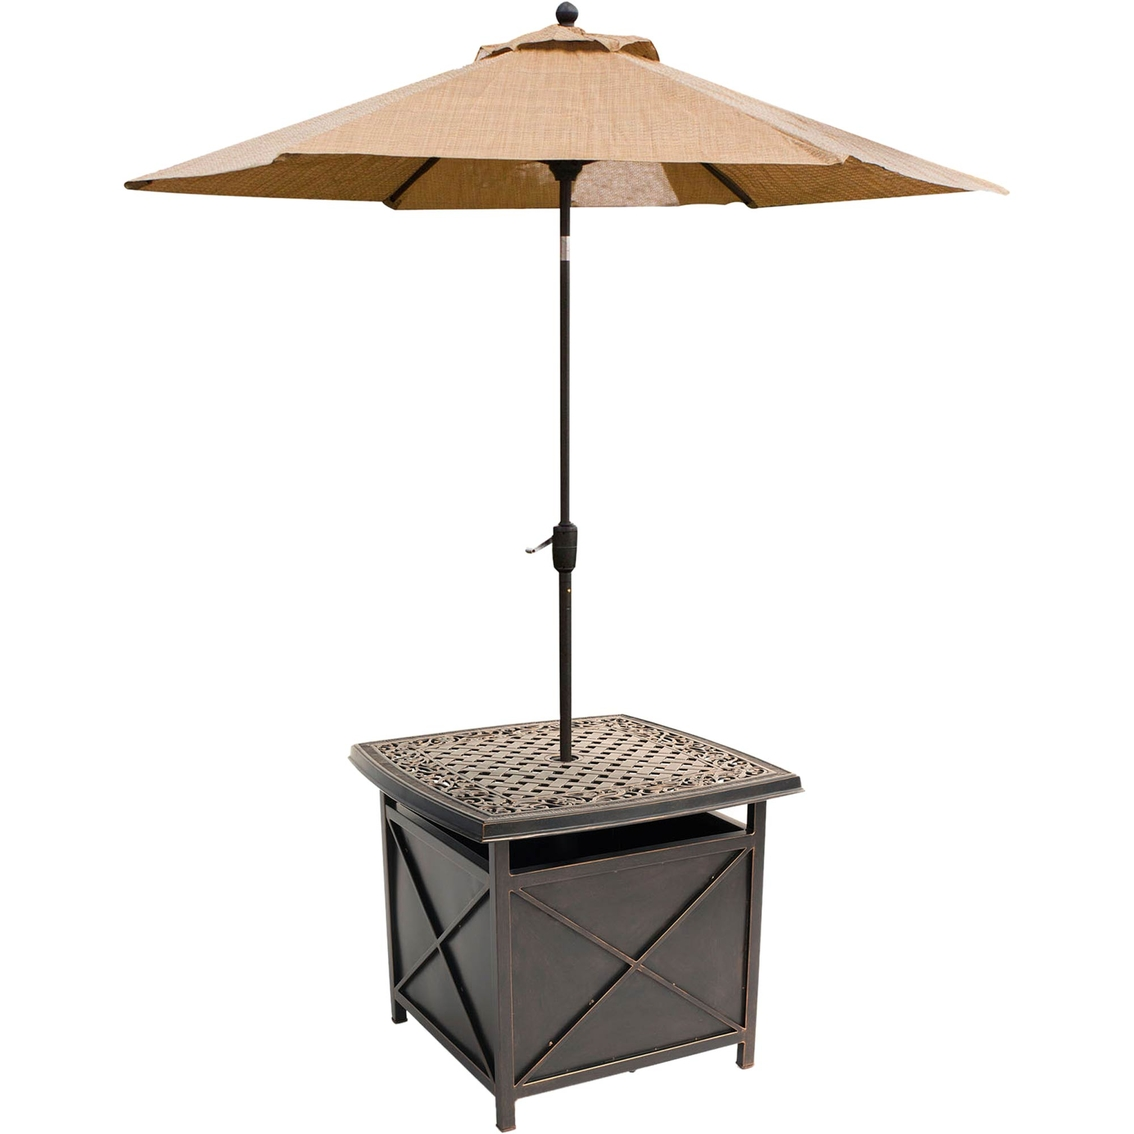 Outdoor Umbrella Side Table - Grottepastenaecollepardo ...